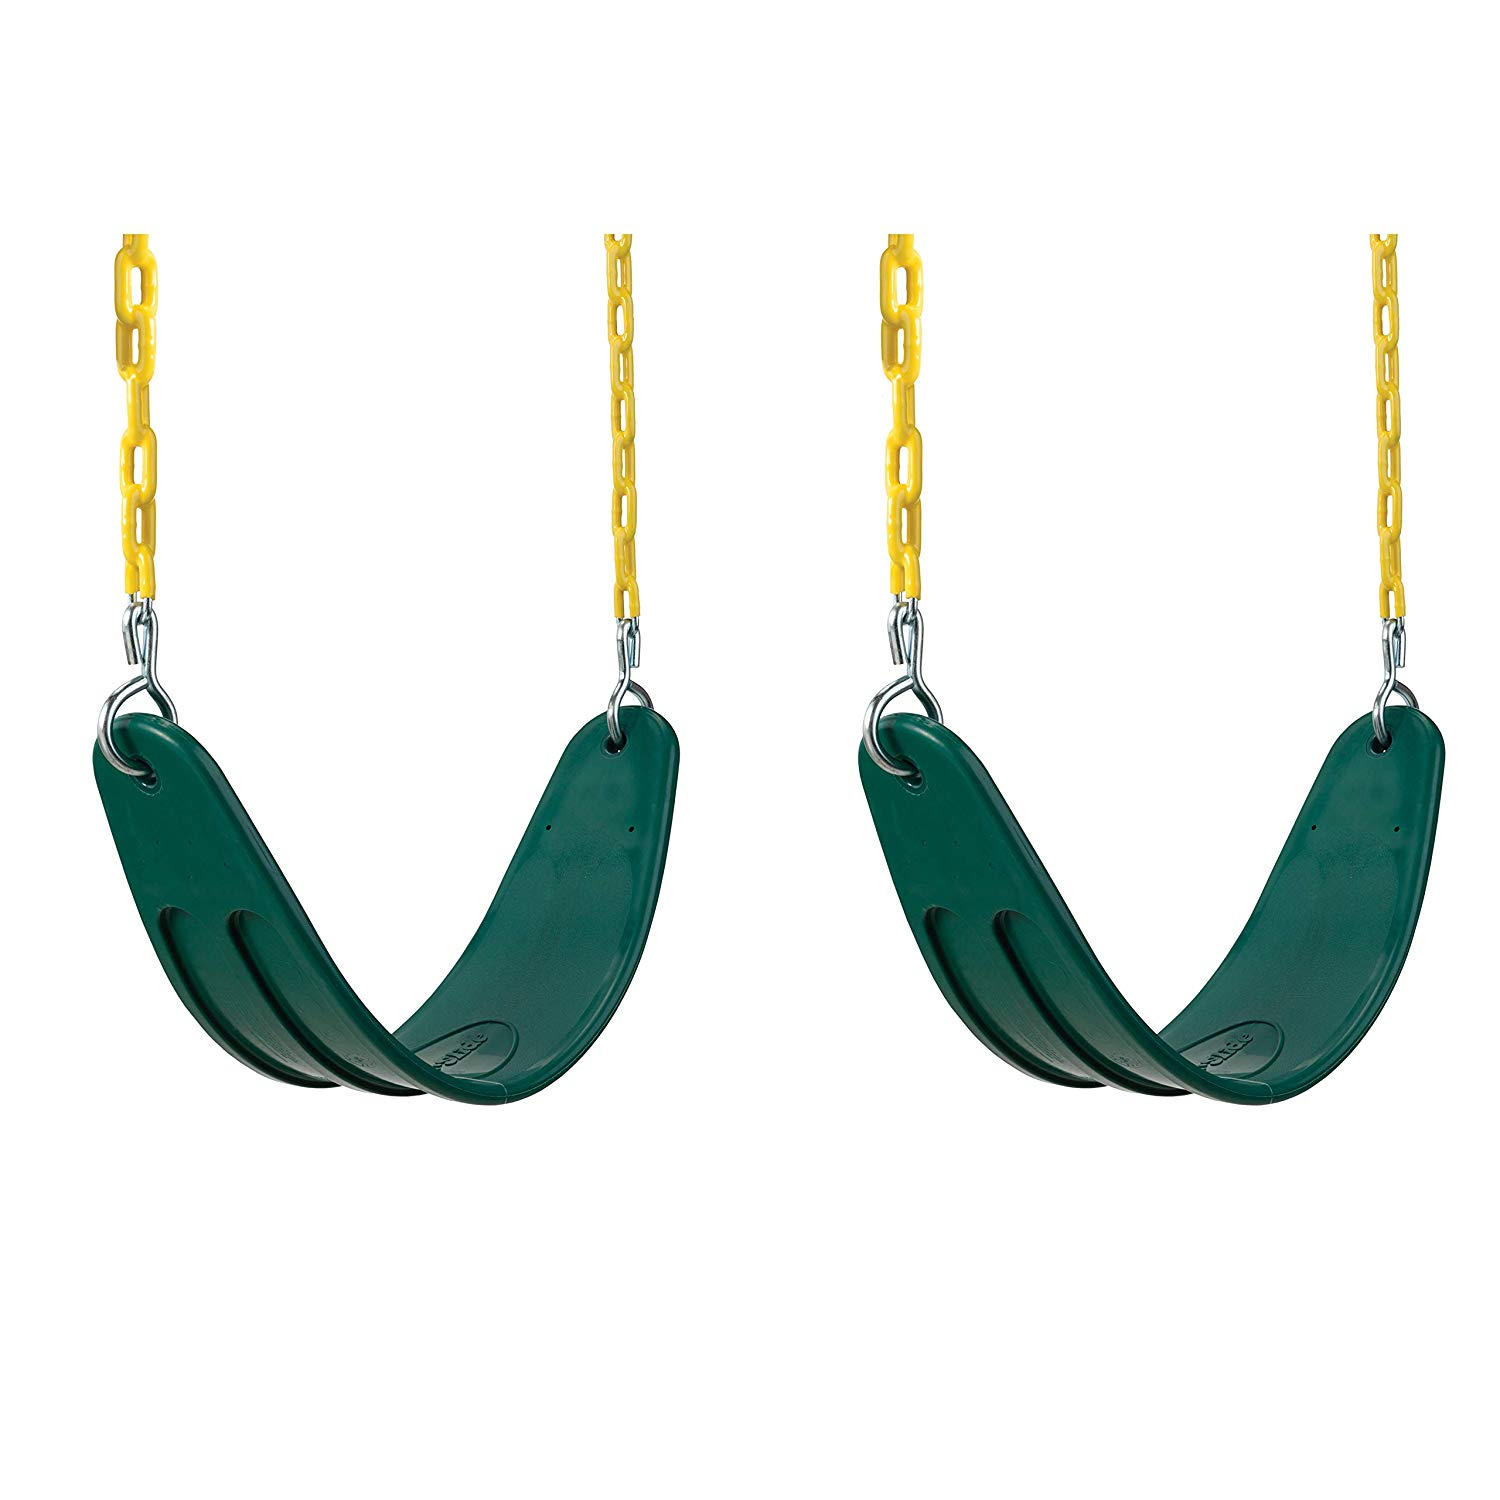 2 Pack of Outdoor, Playground Swings with Coated Chains & Quick Links, Green – Extreme Heavy Duty Swing Seat Set